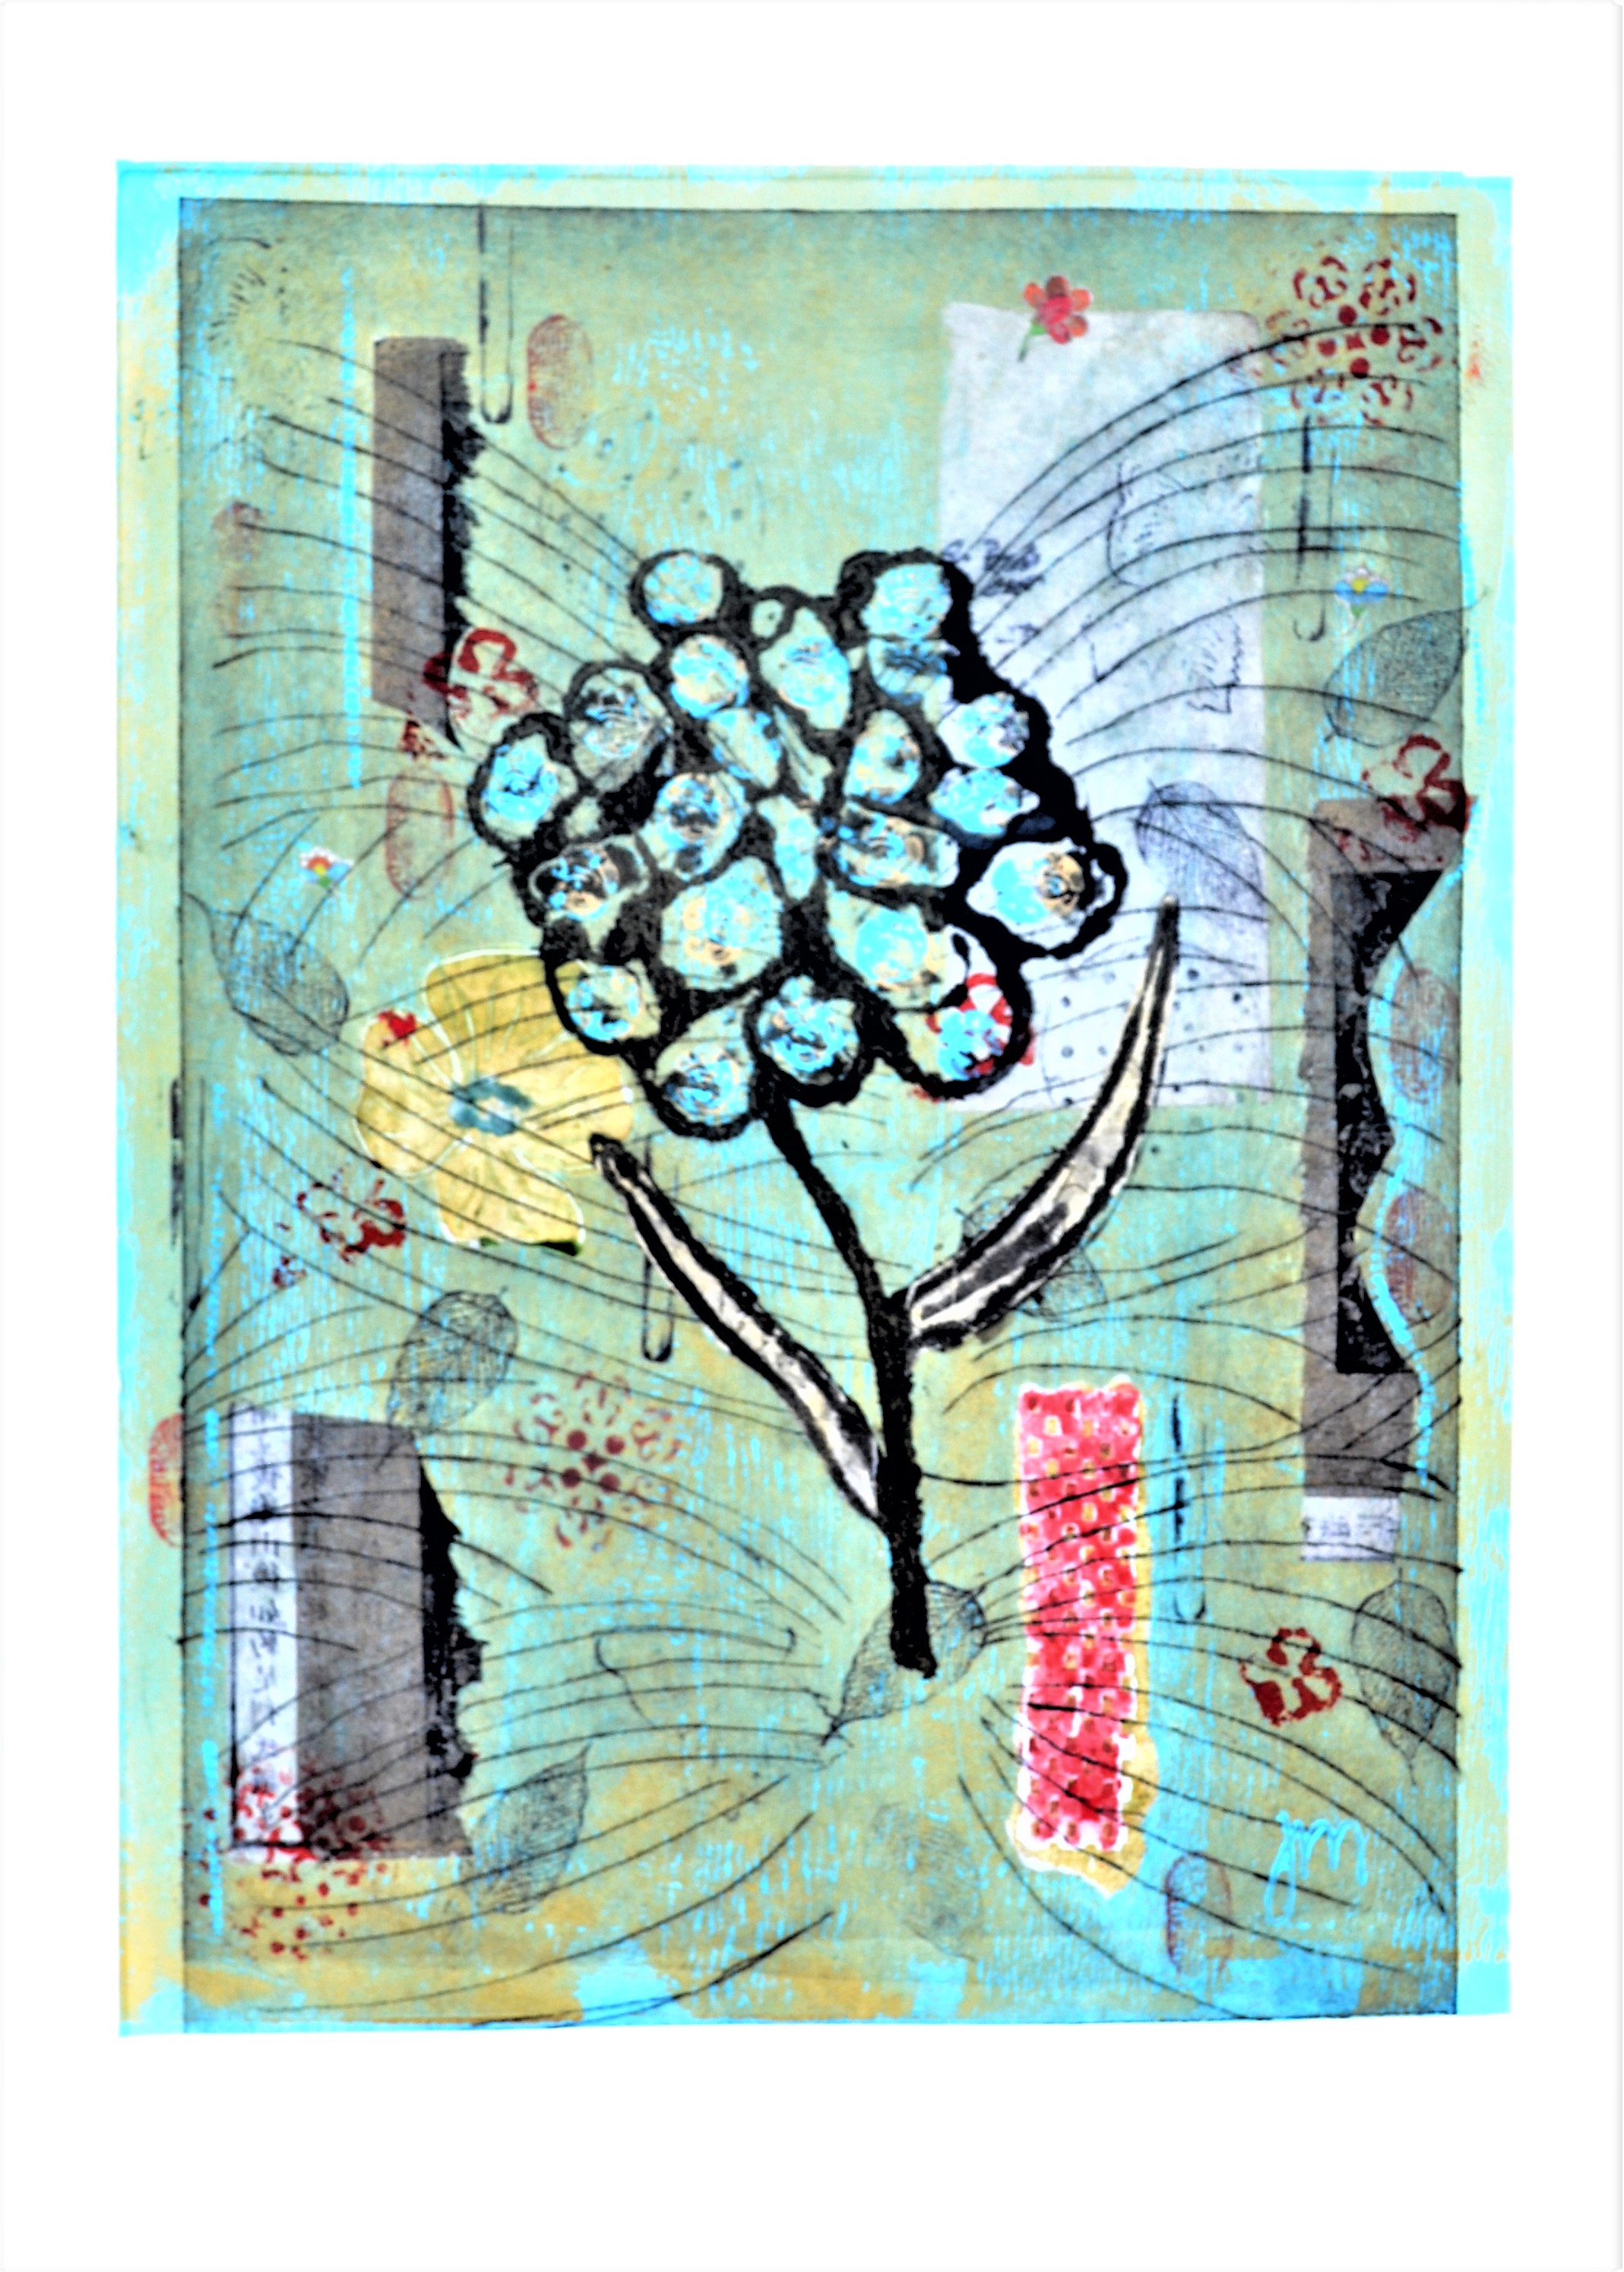 <strong>Memories<strong> Dry point, Chine Colle and Mixed Media Monoprint Framed - 660mm H x 530mm W x 40mm $450